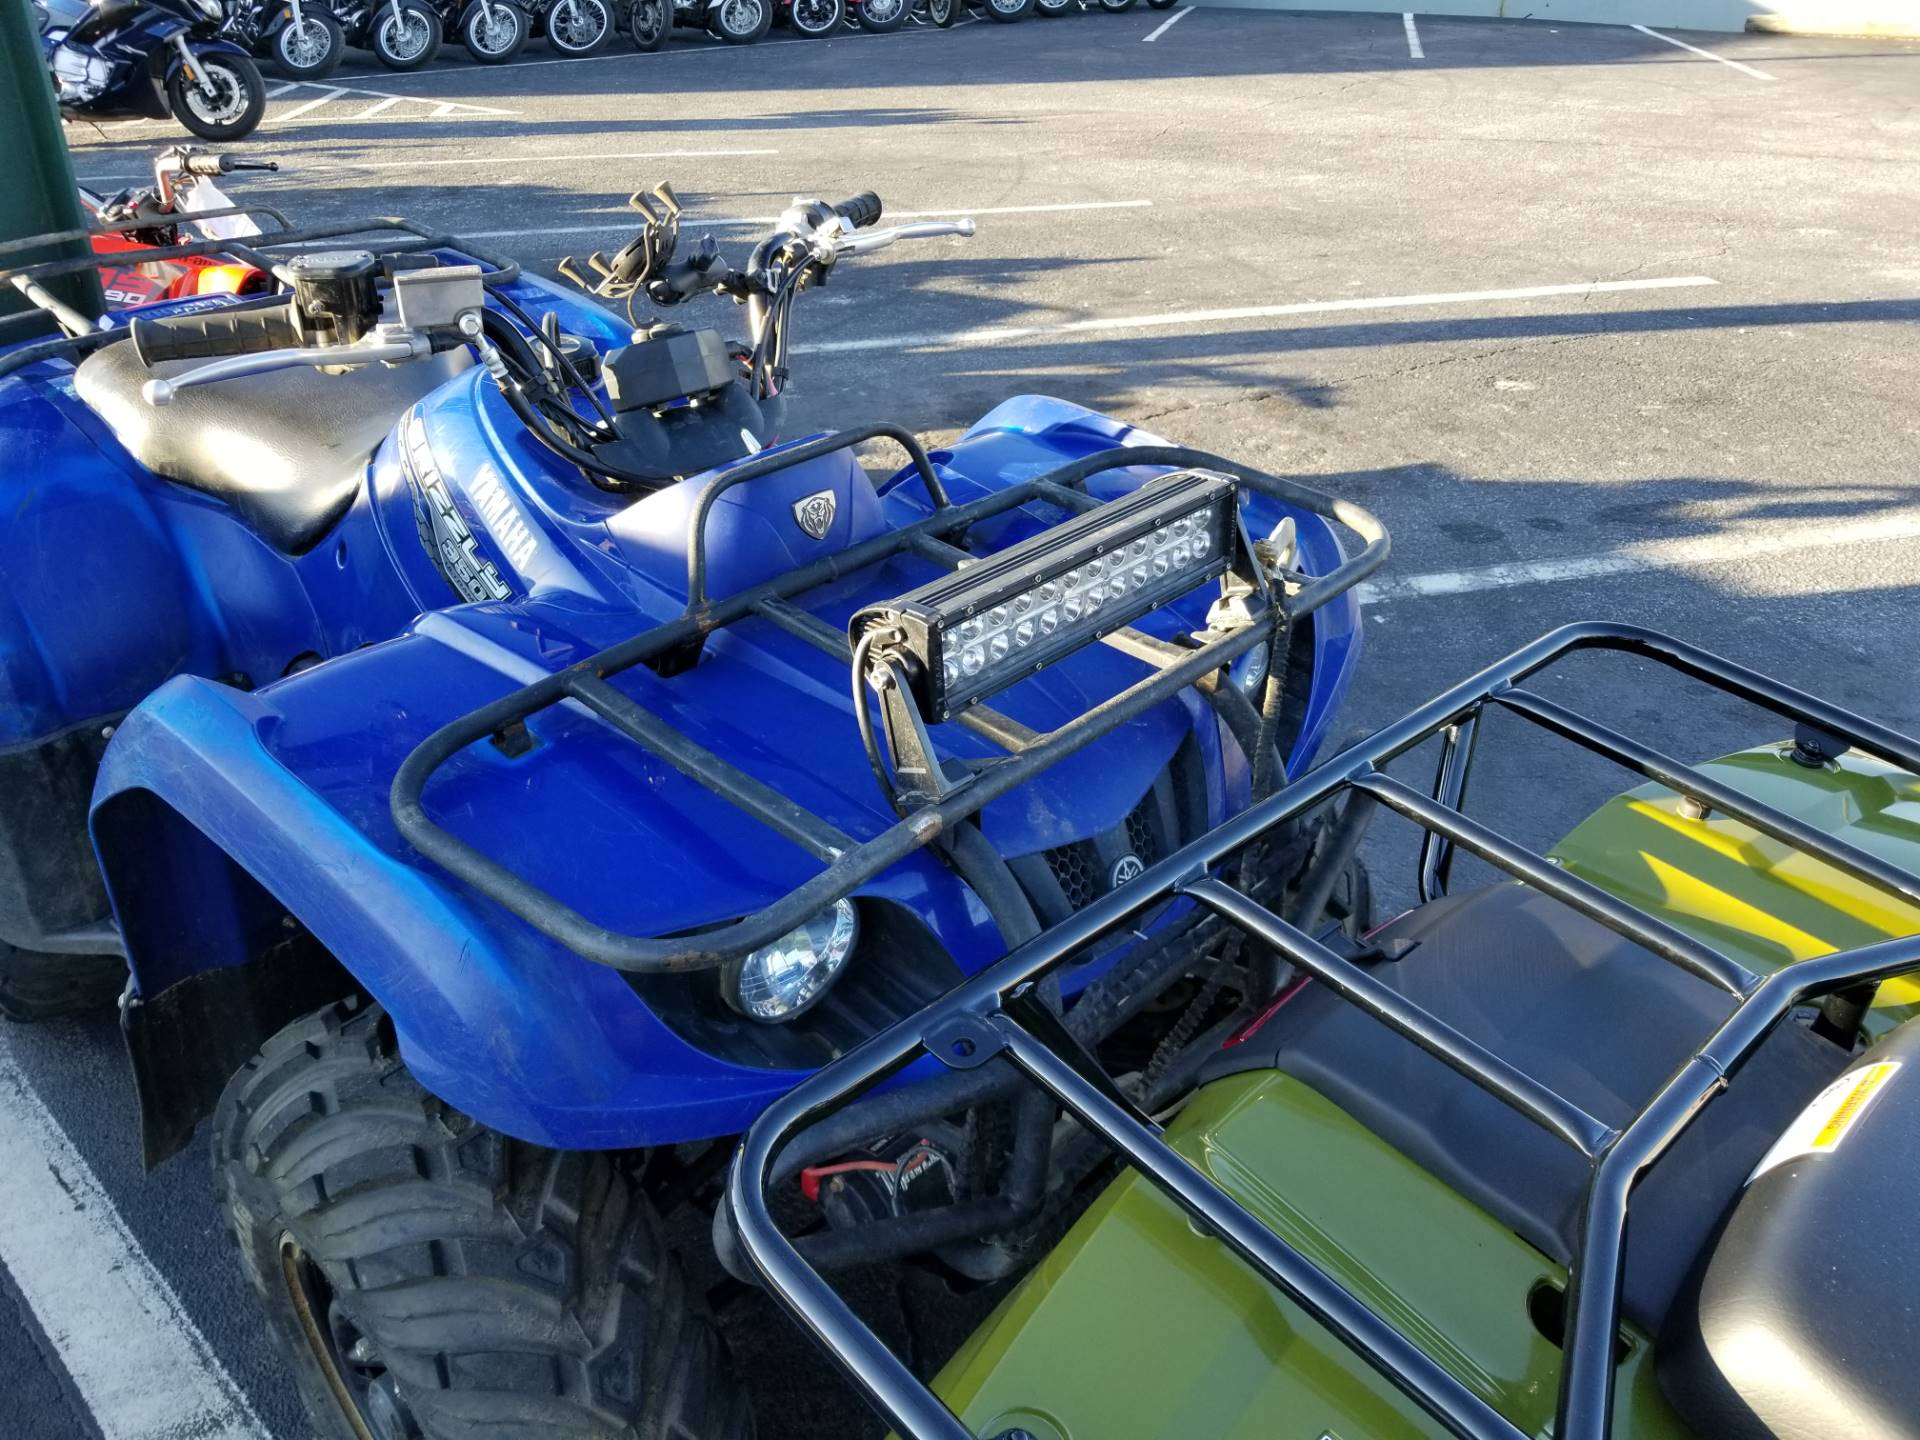 Used 2014 Yamaha Grizzly 350 Auto 4x4 ATVs in Greenville SC